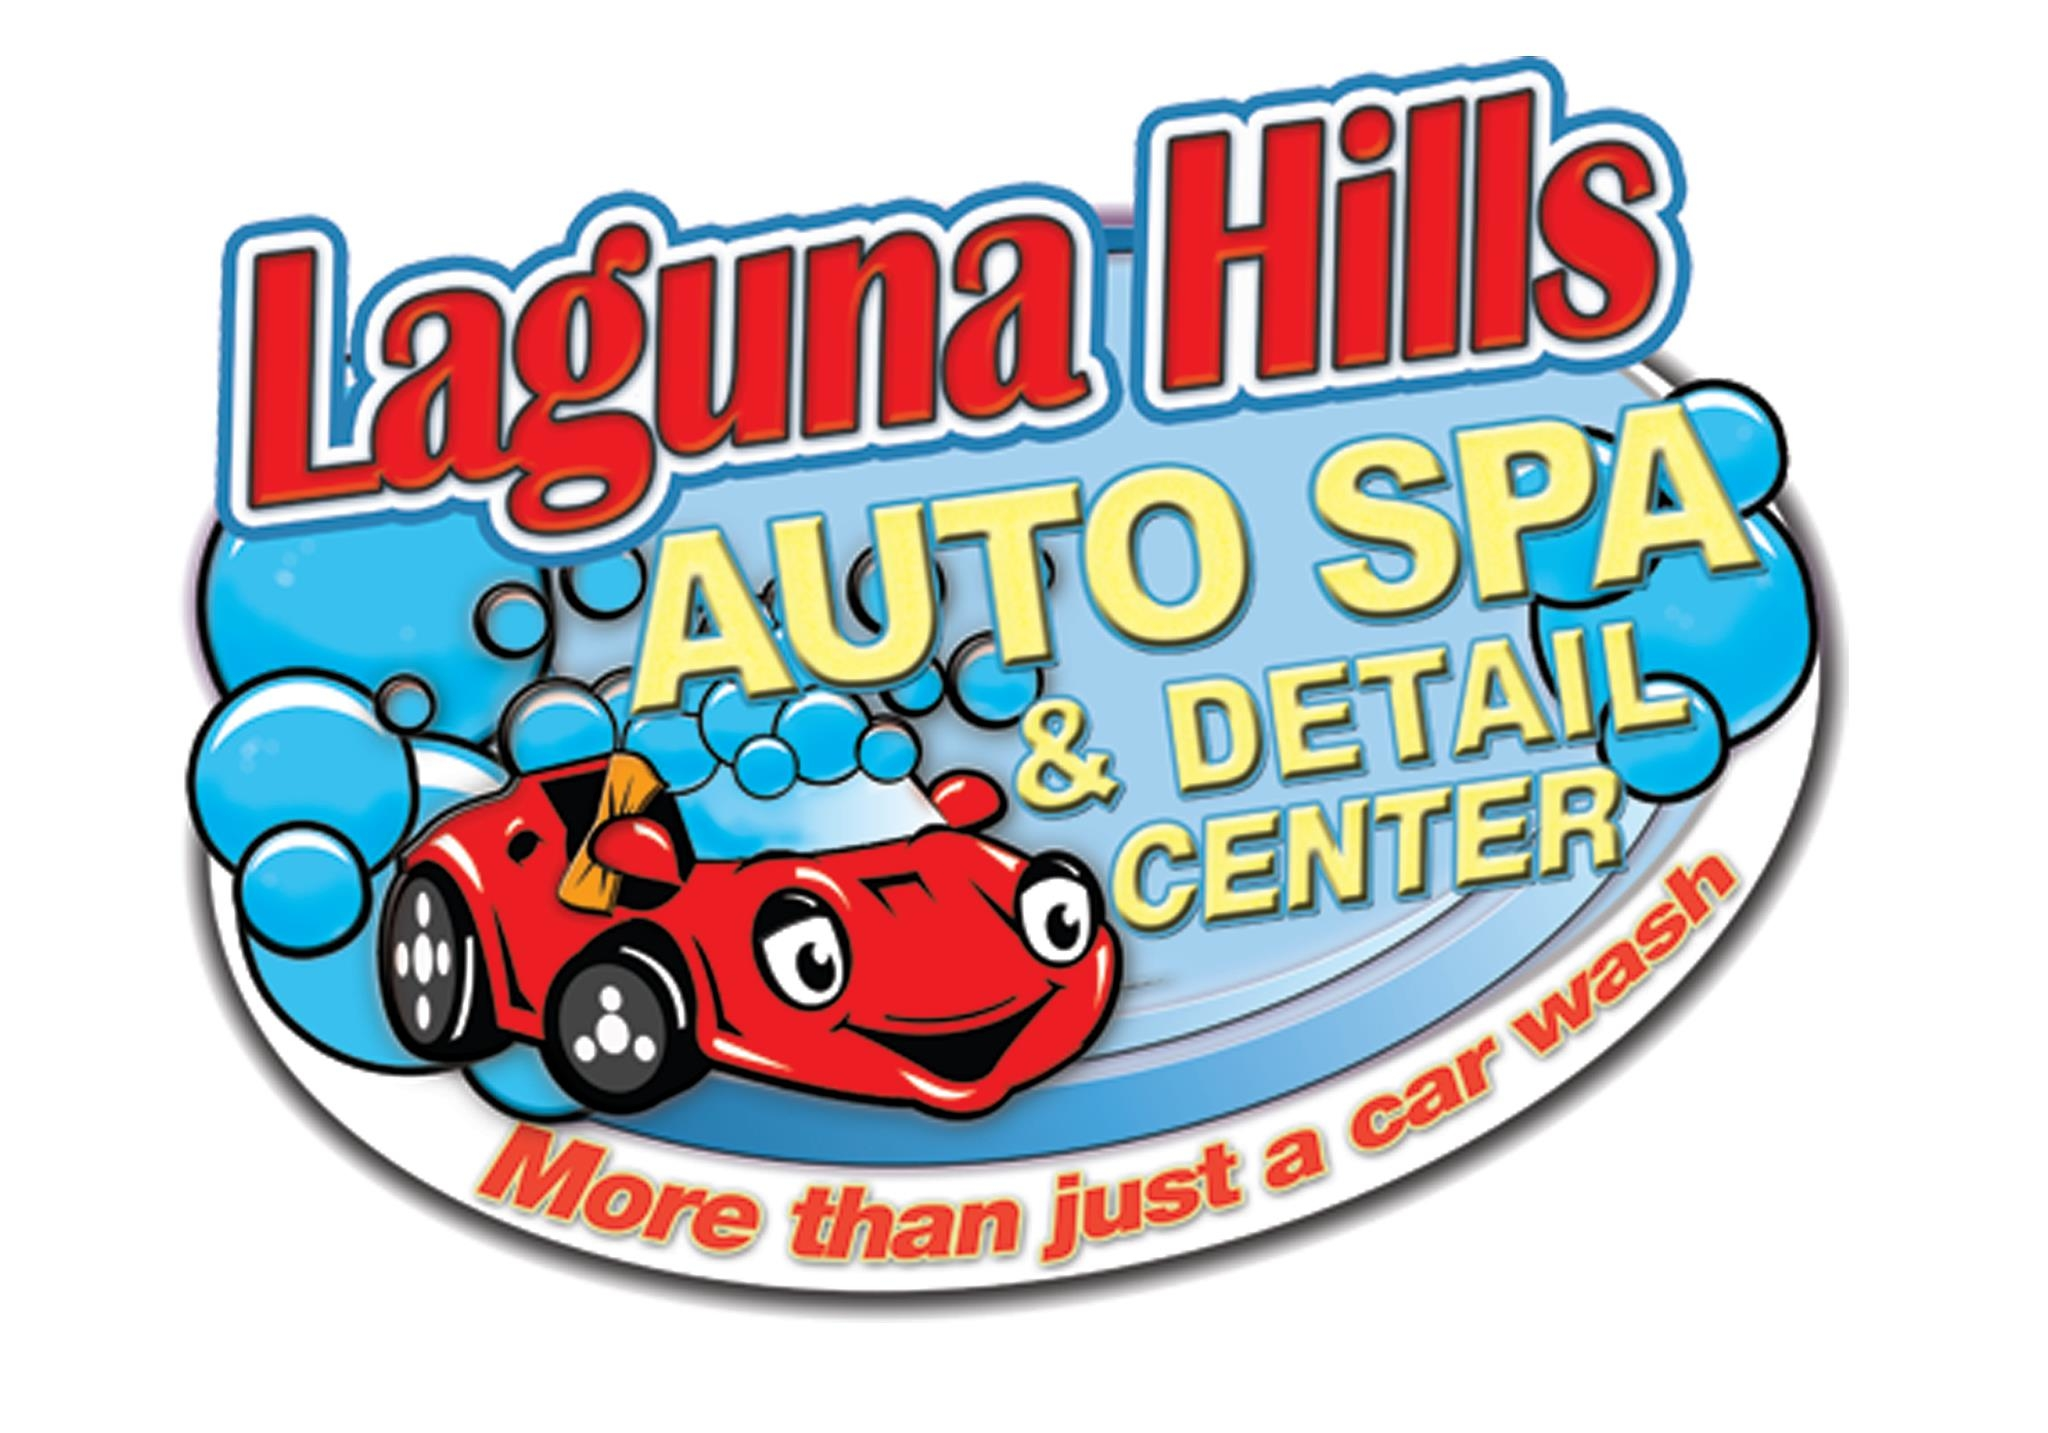 Laguna Hills Auto Spa & Detail Center